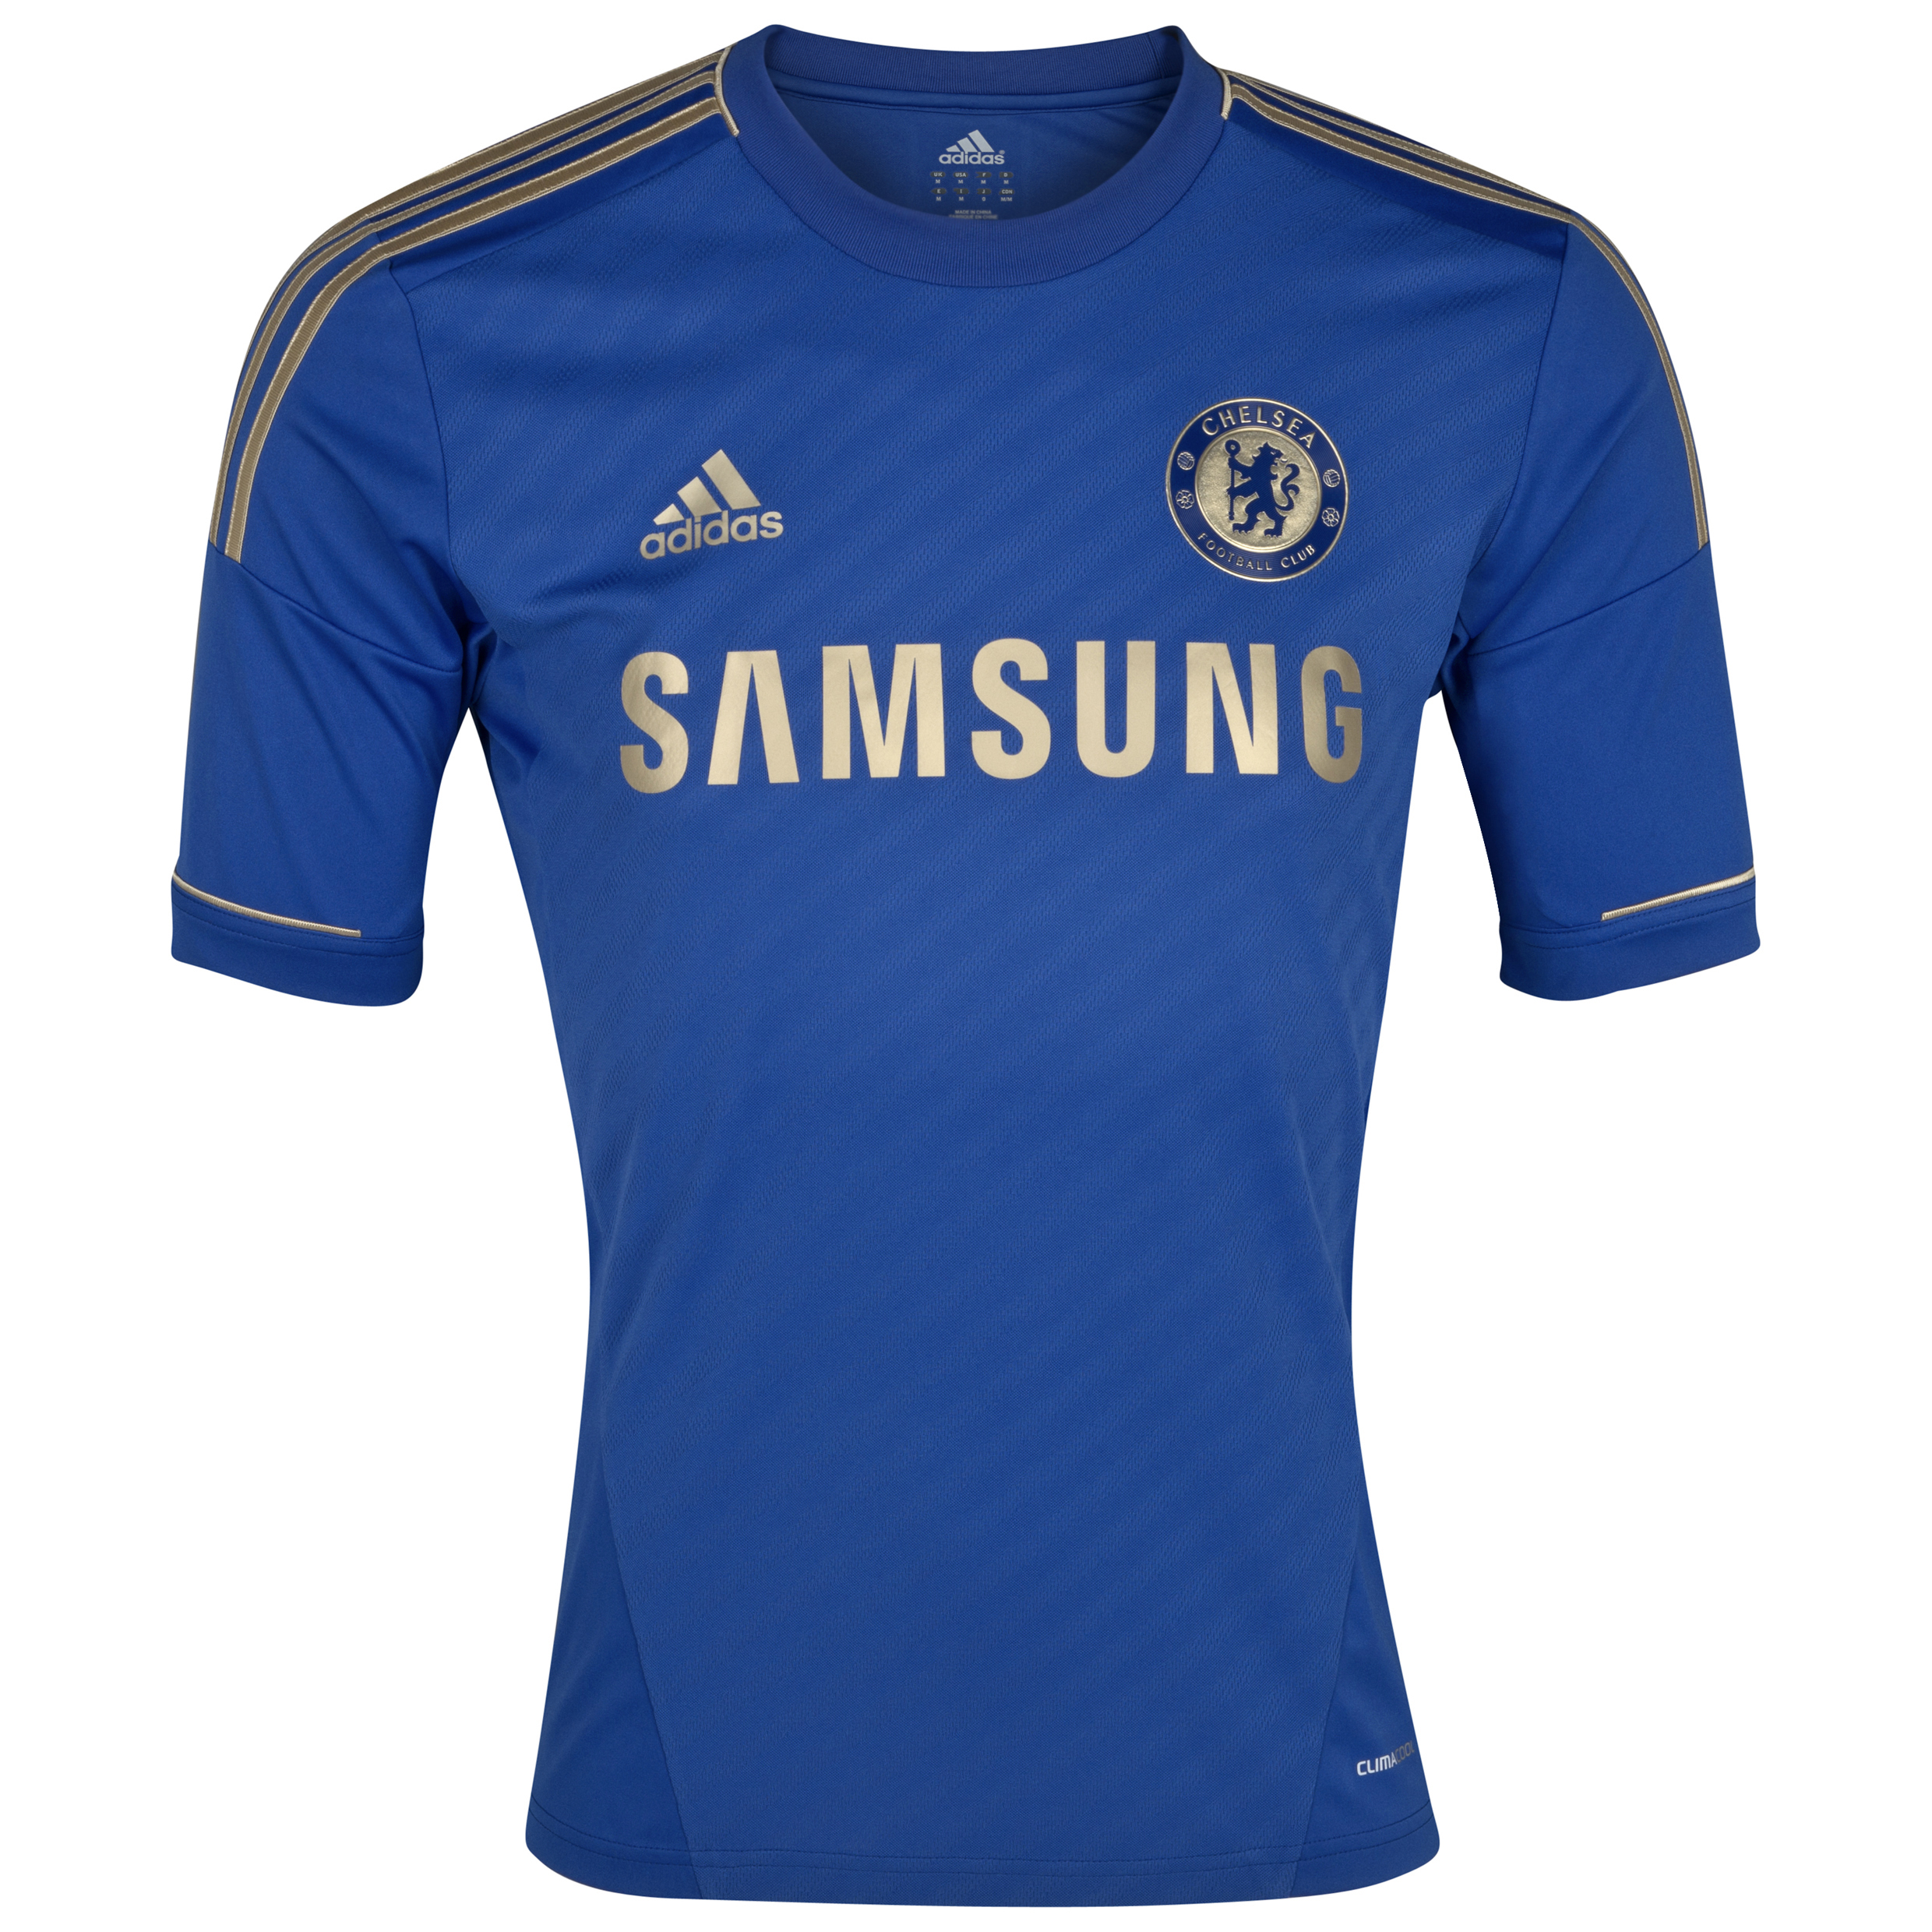 Chelsea Home Shirt 2012/13 - Outsize